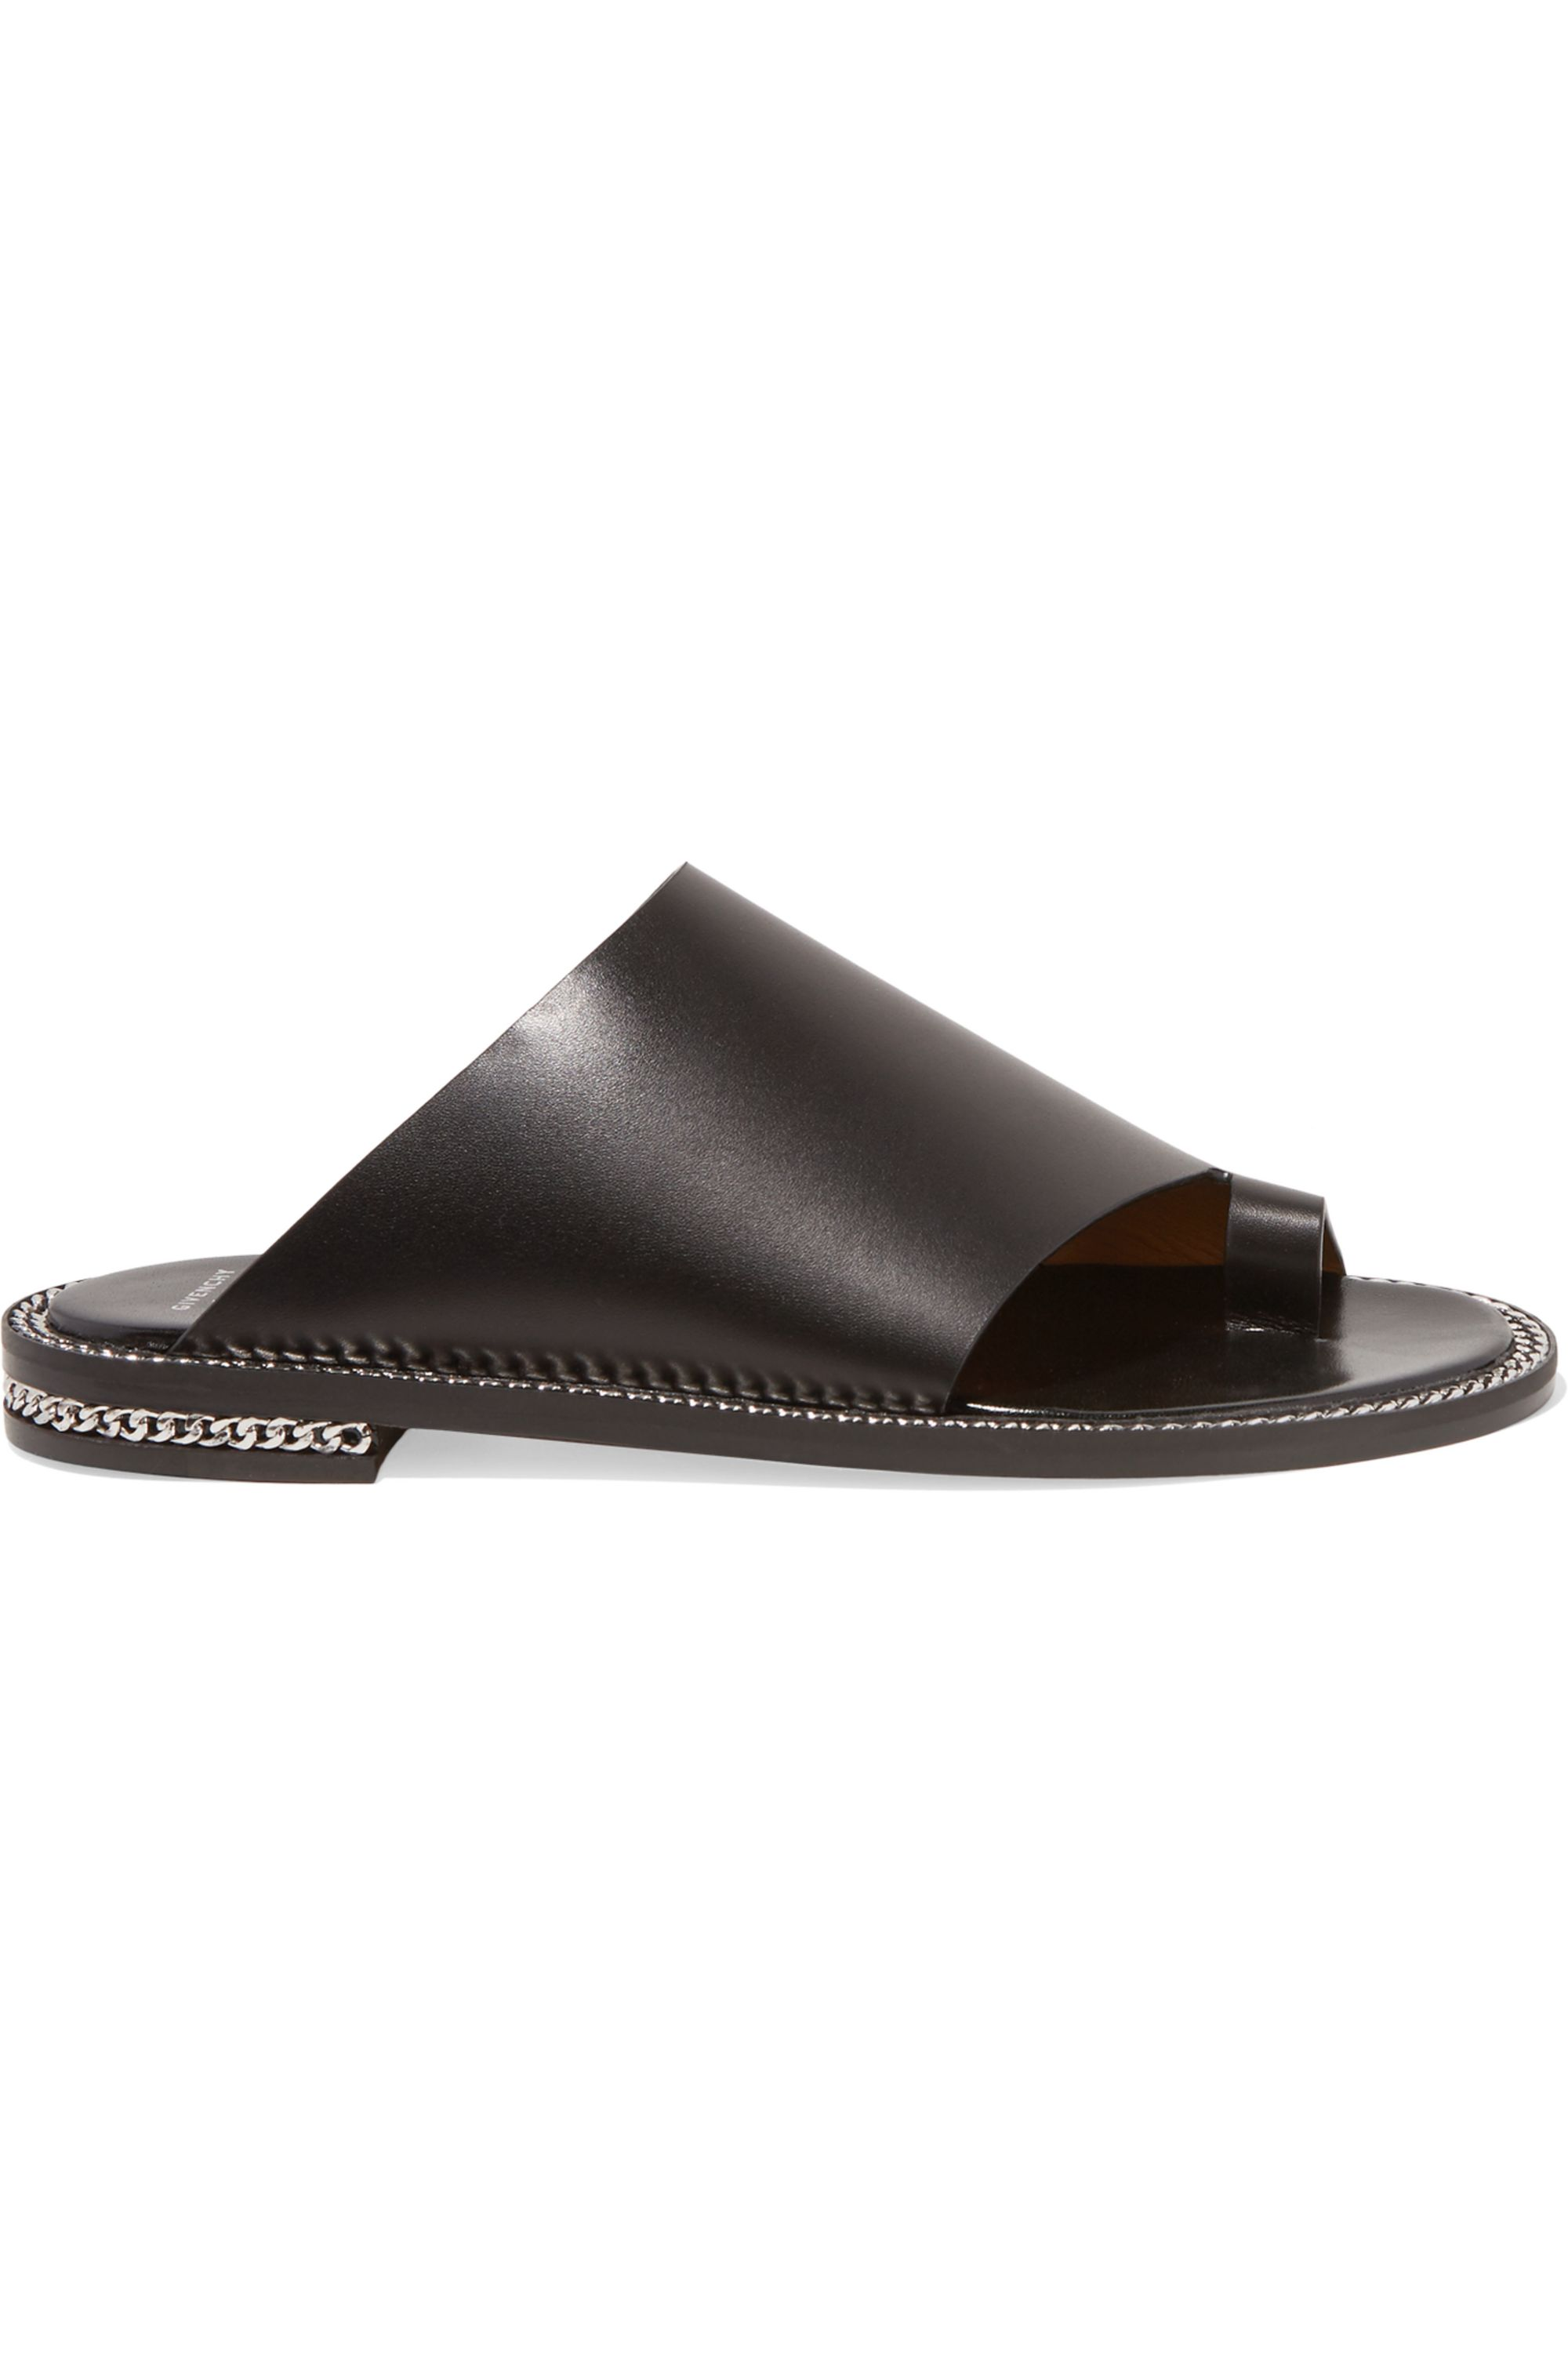 Givenchy Rosamunda chain-trimmed sandals in black leather